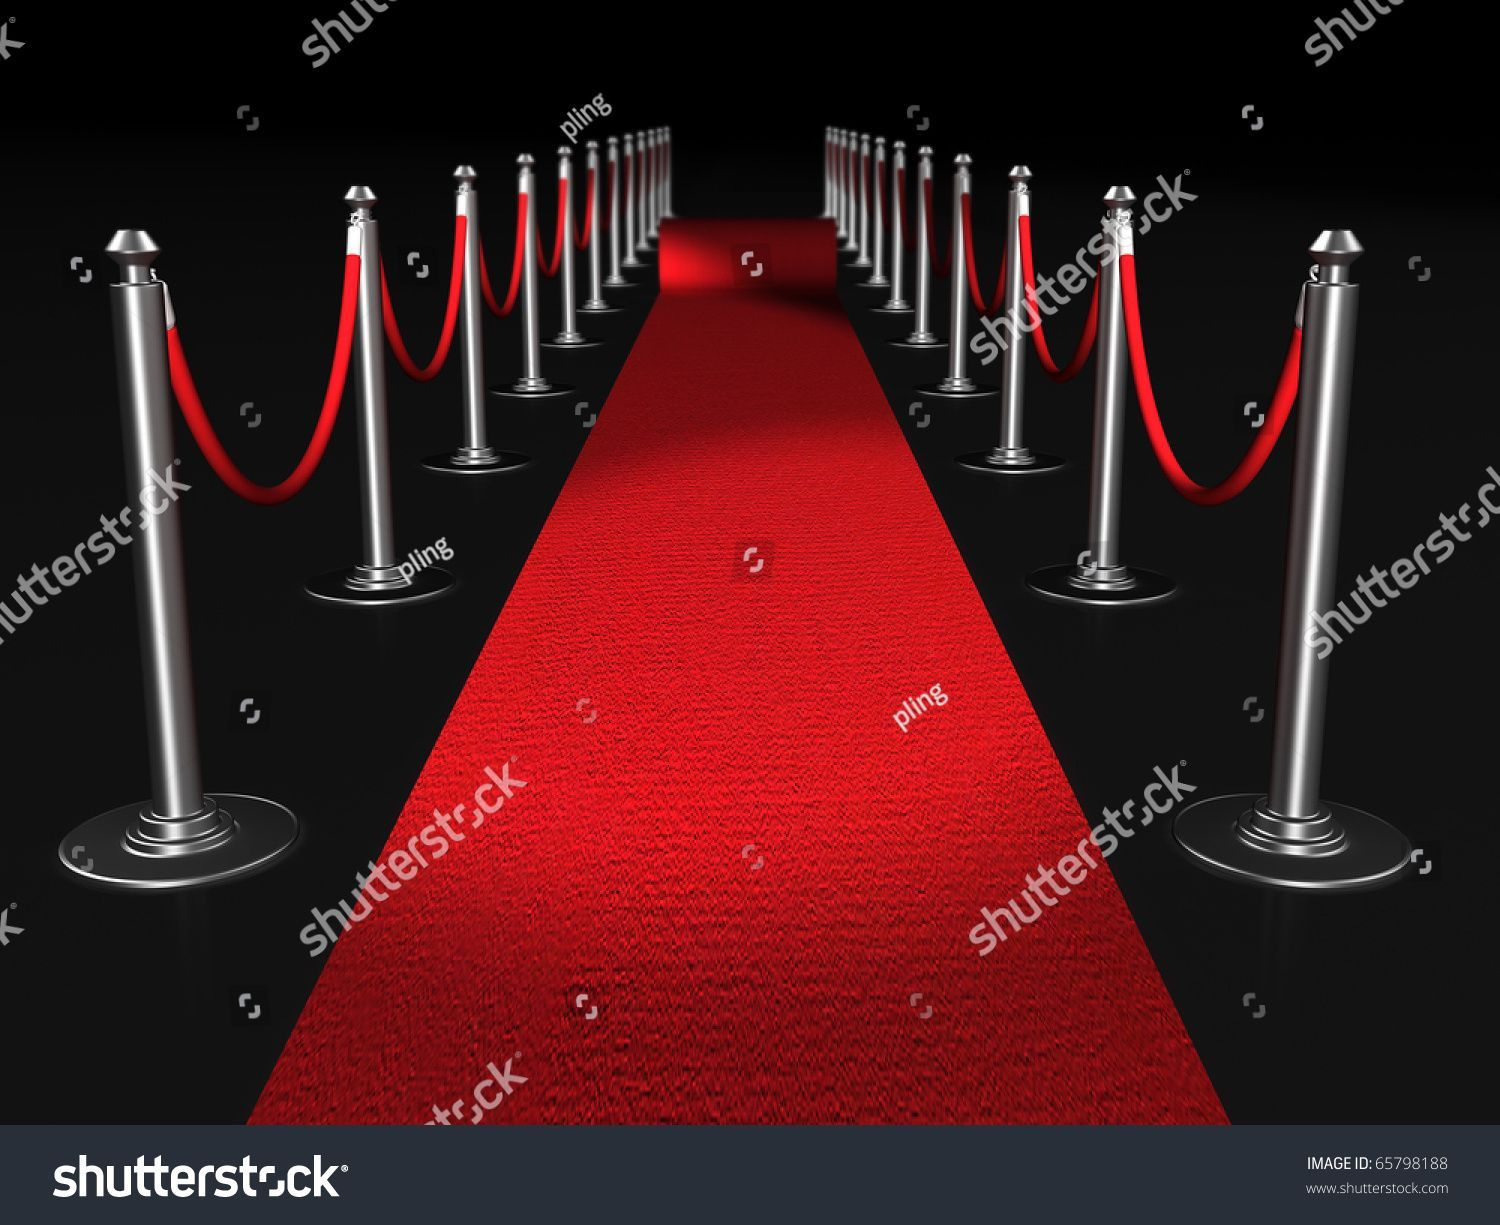 006 Simple Red Carpet Invitation Template Free High Definition  DownloadFull